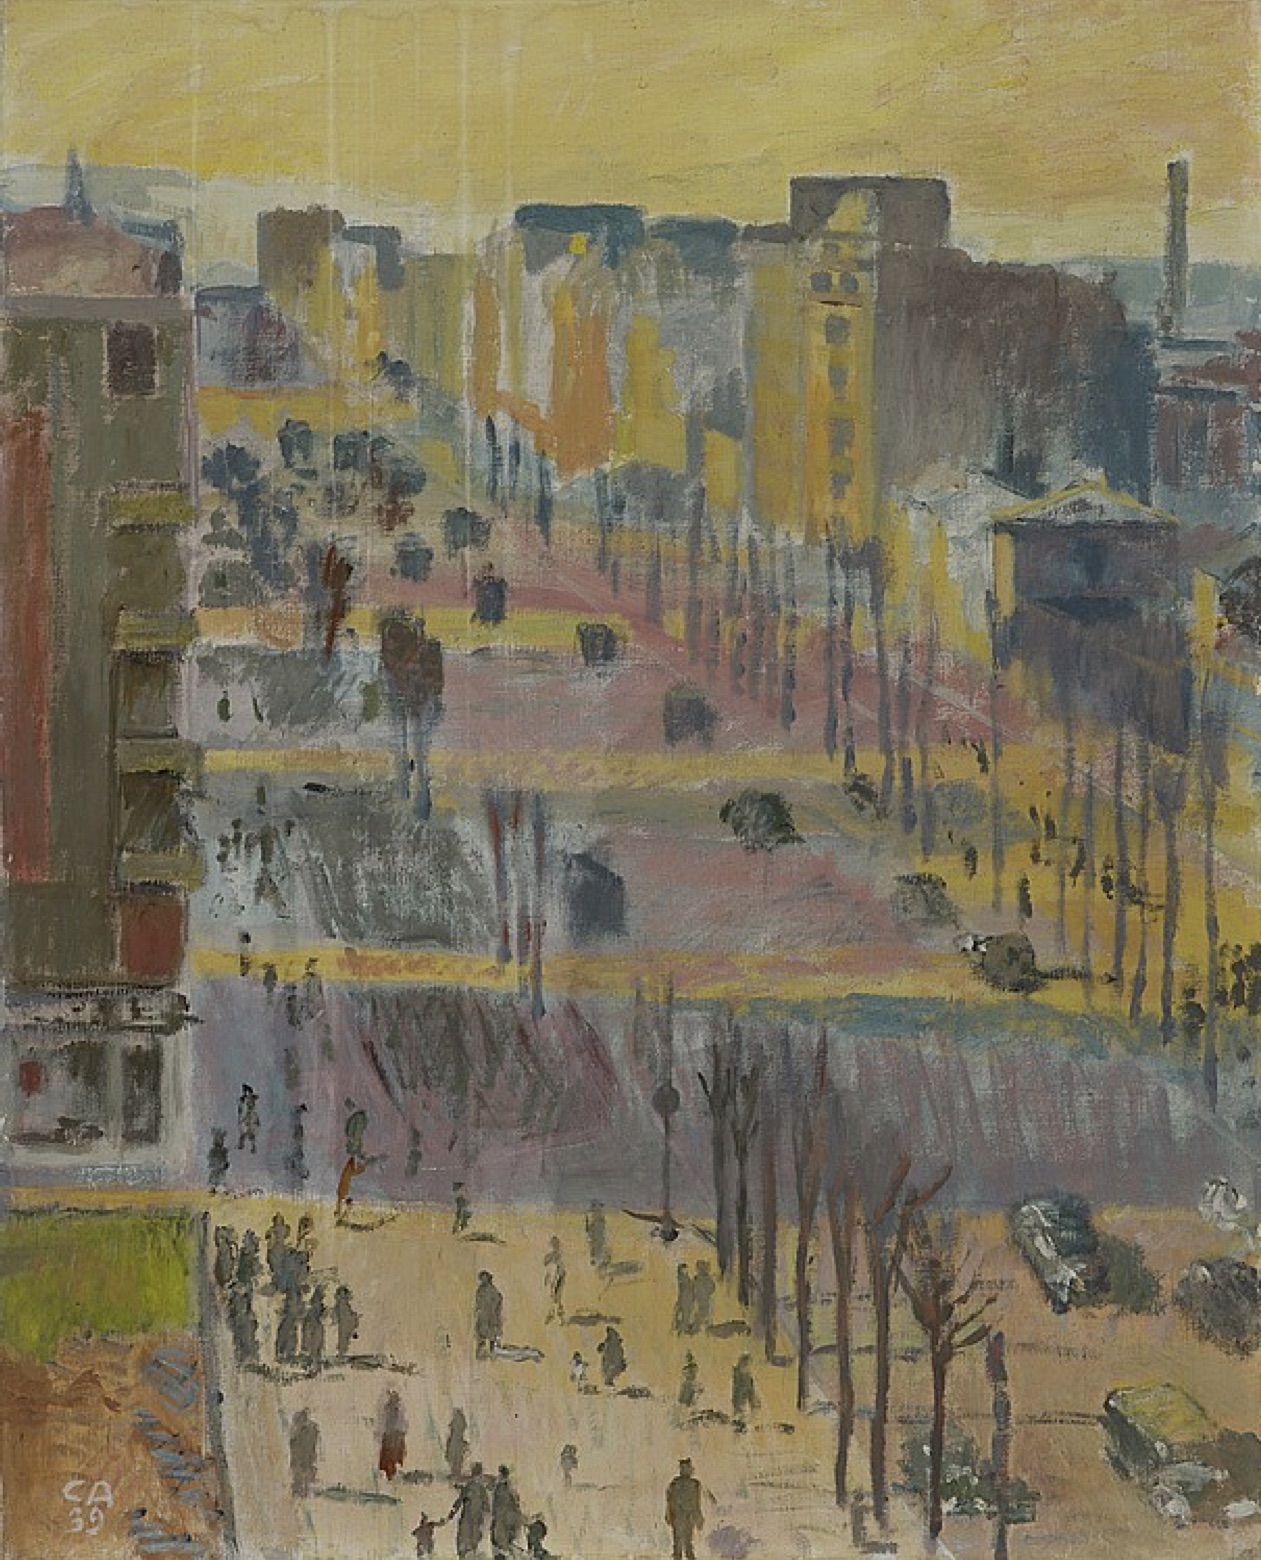 Cuno Amiet, Boulevard Brune, Paris, 1939 - exhibited in Stockholm, 1950